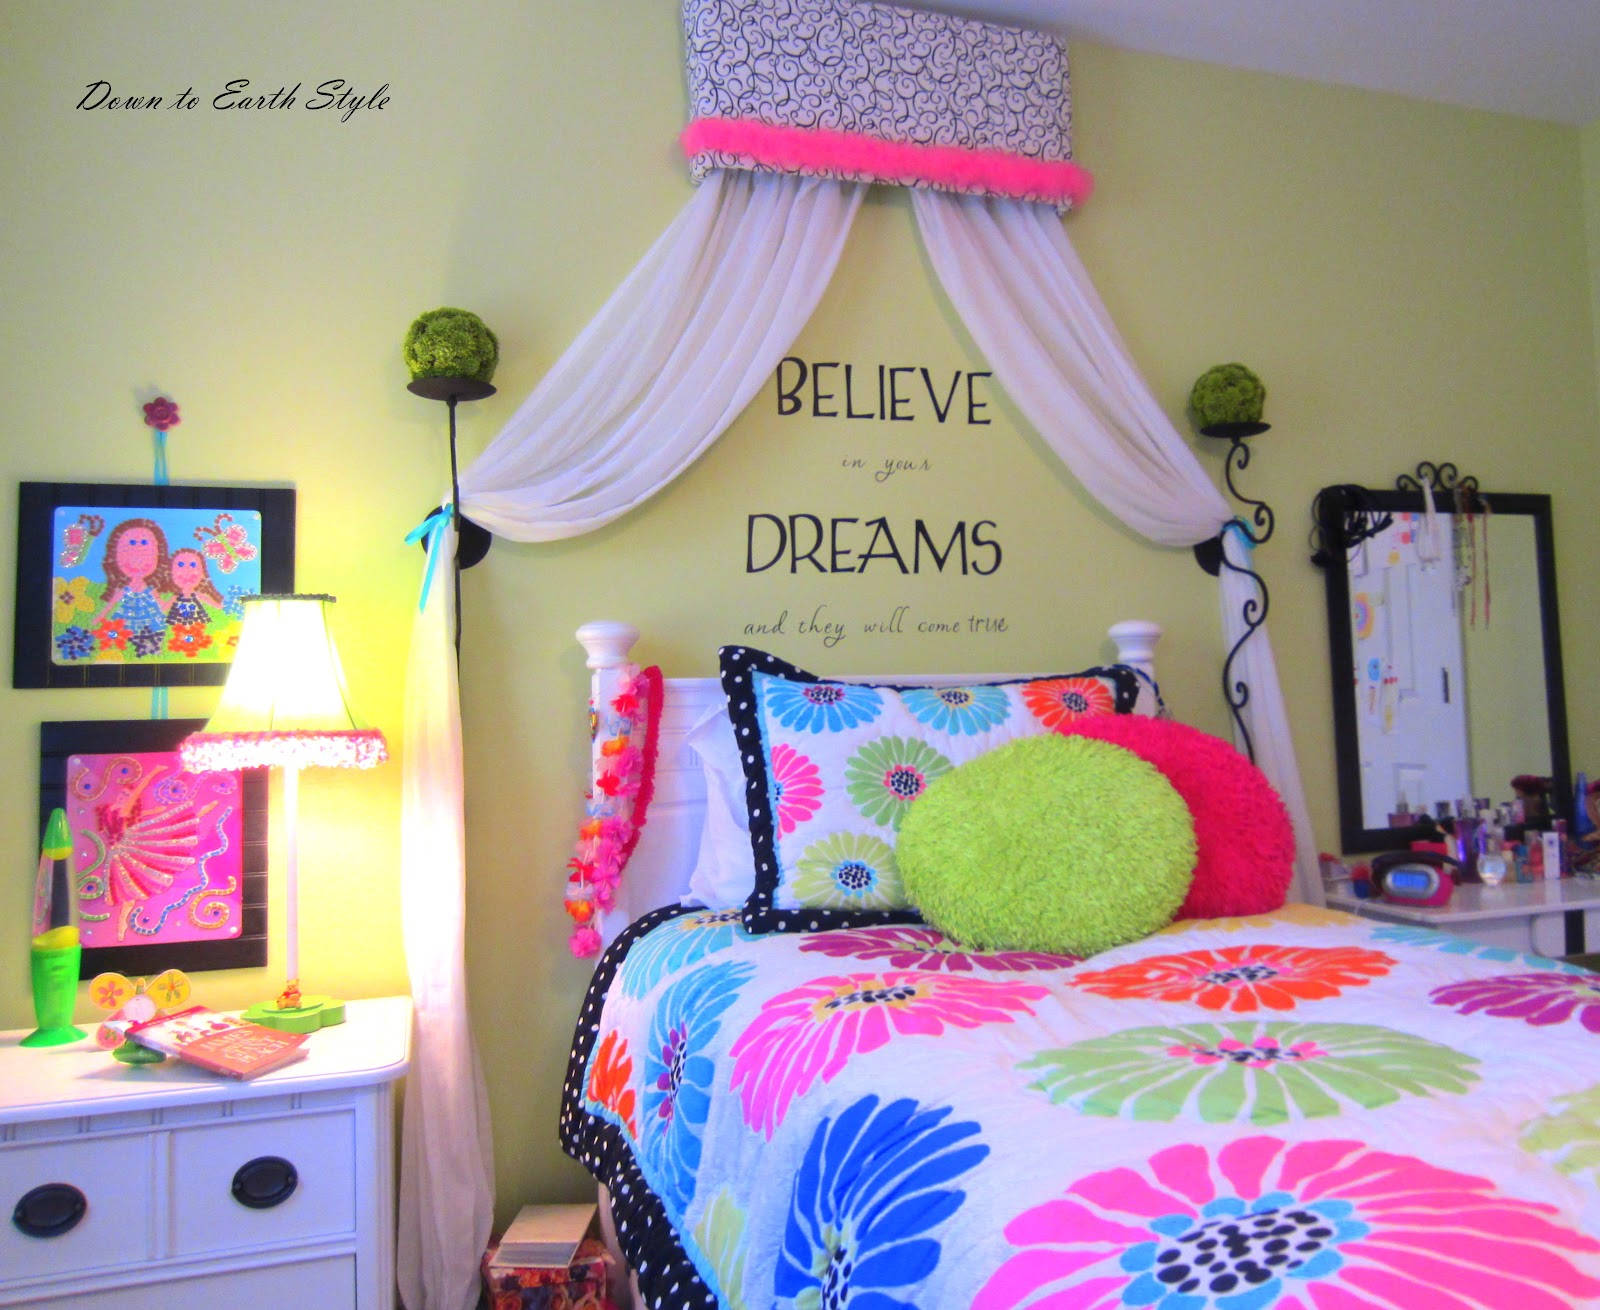 Down to earth style tween girl room Cute kid room ideas